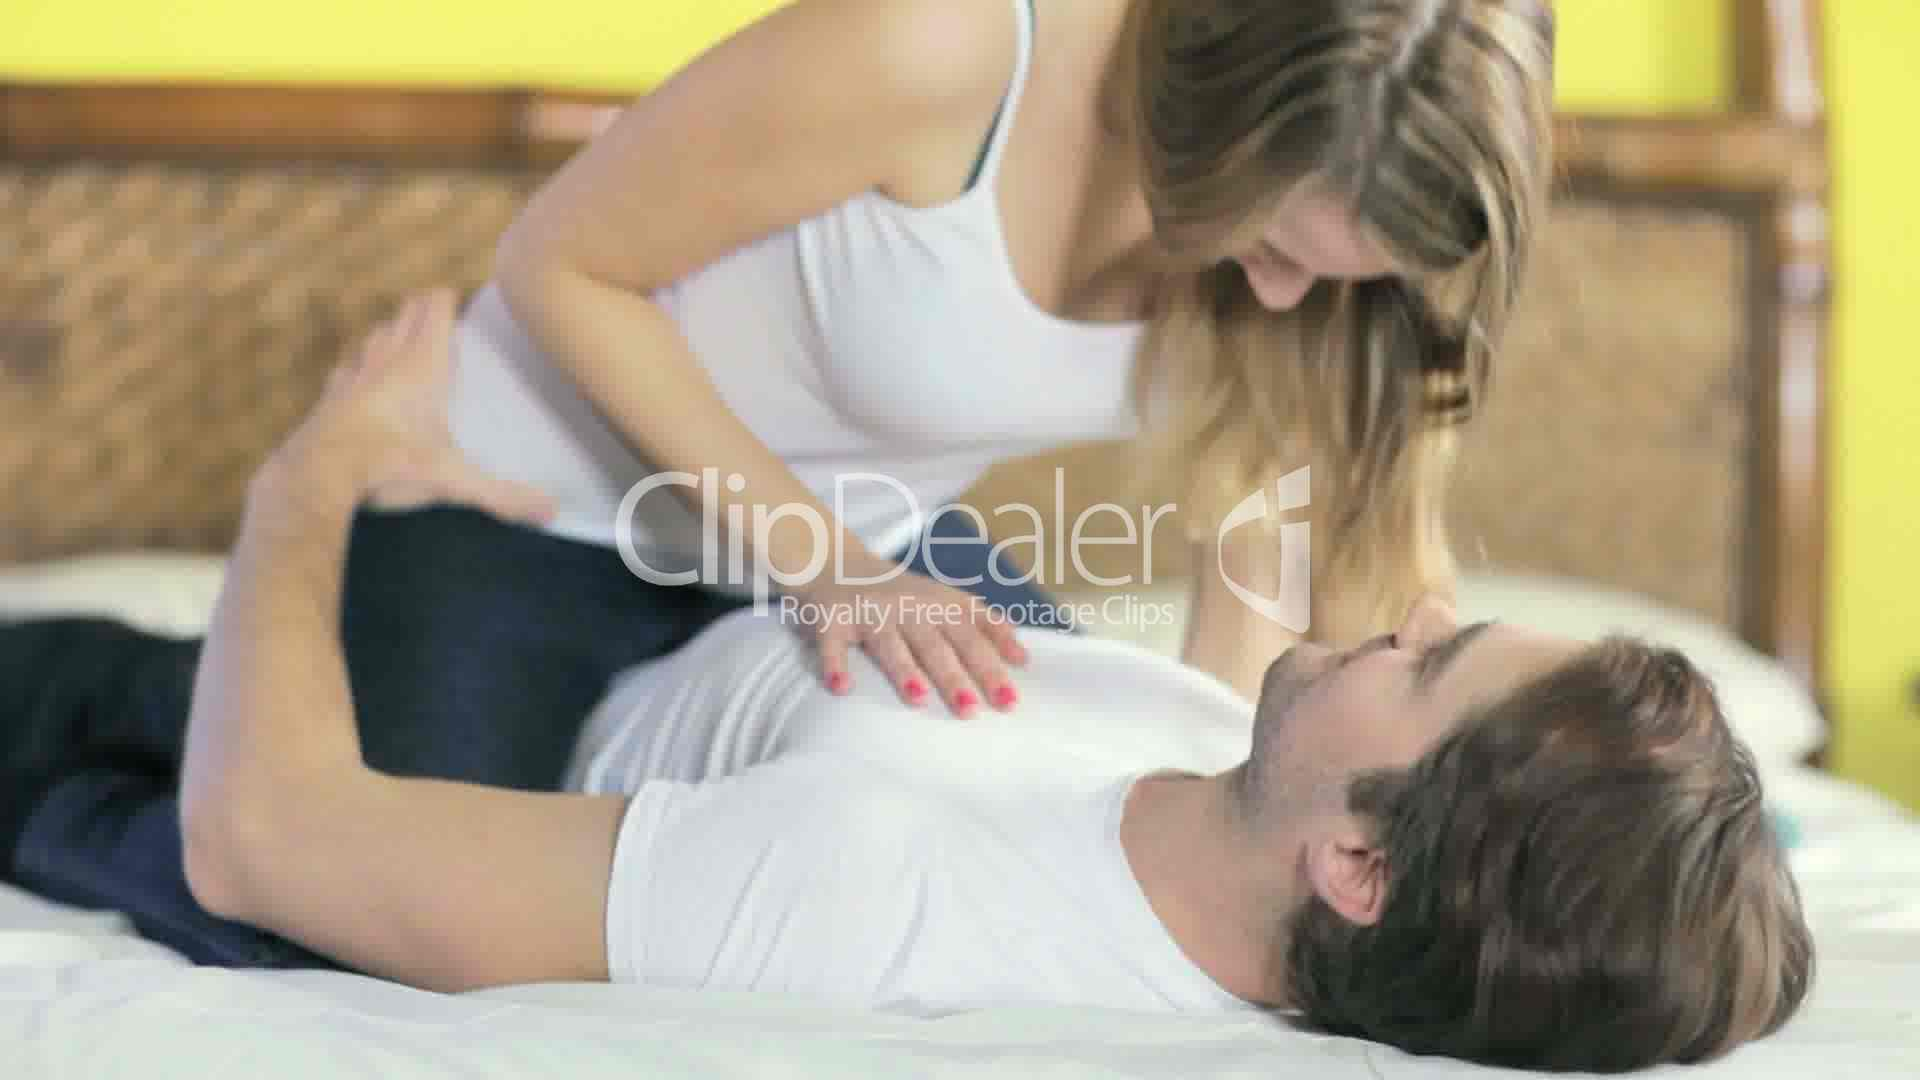 husband and wife relationship in bedroom video romance